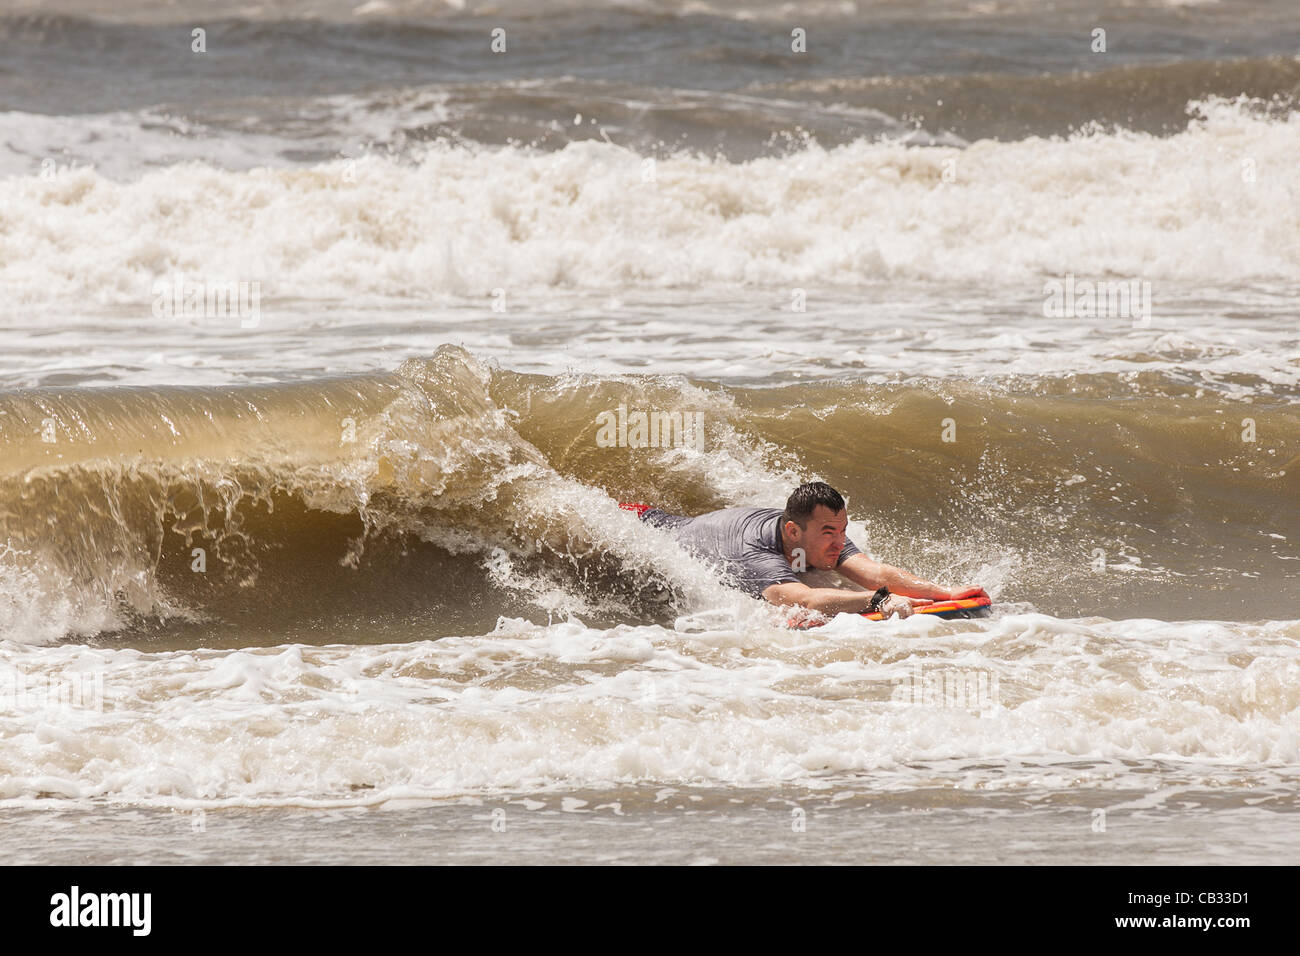 USA. A beach goer body surfs strong waves as Tropical Storm Beryl brushes past the South Carolina coast on May 27, - Stock Image